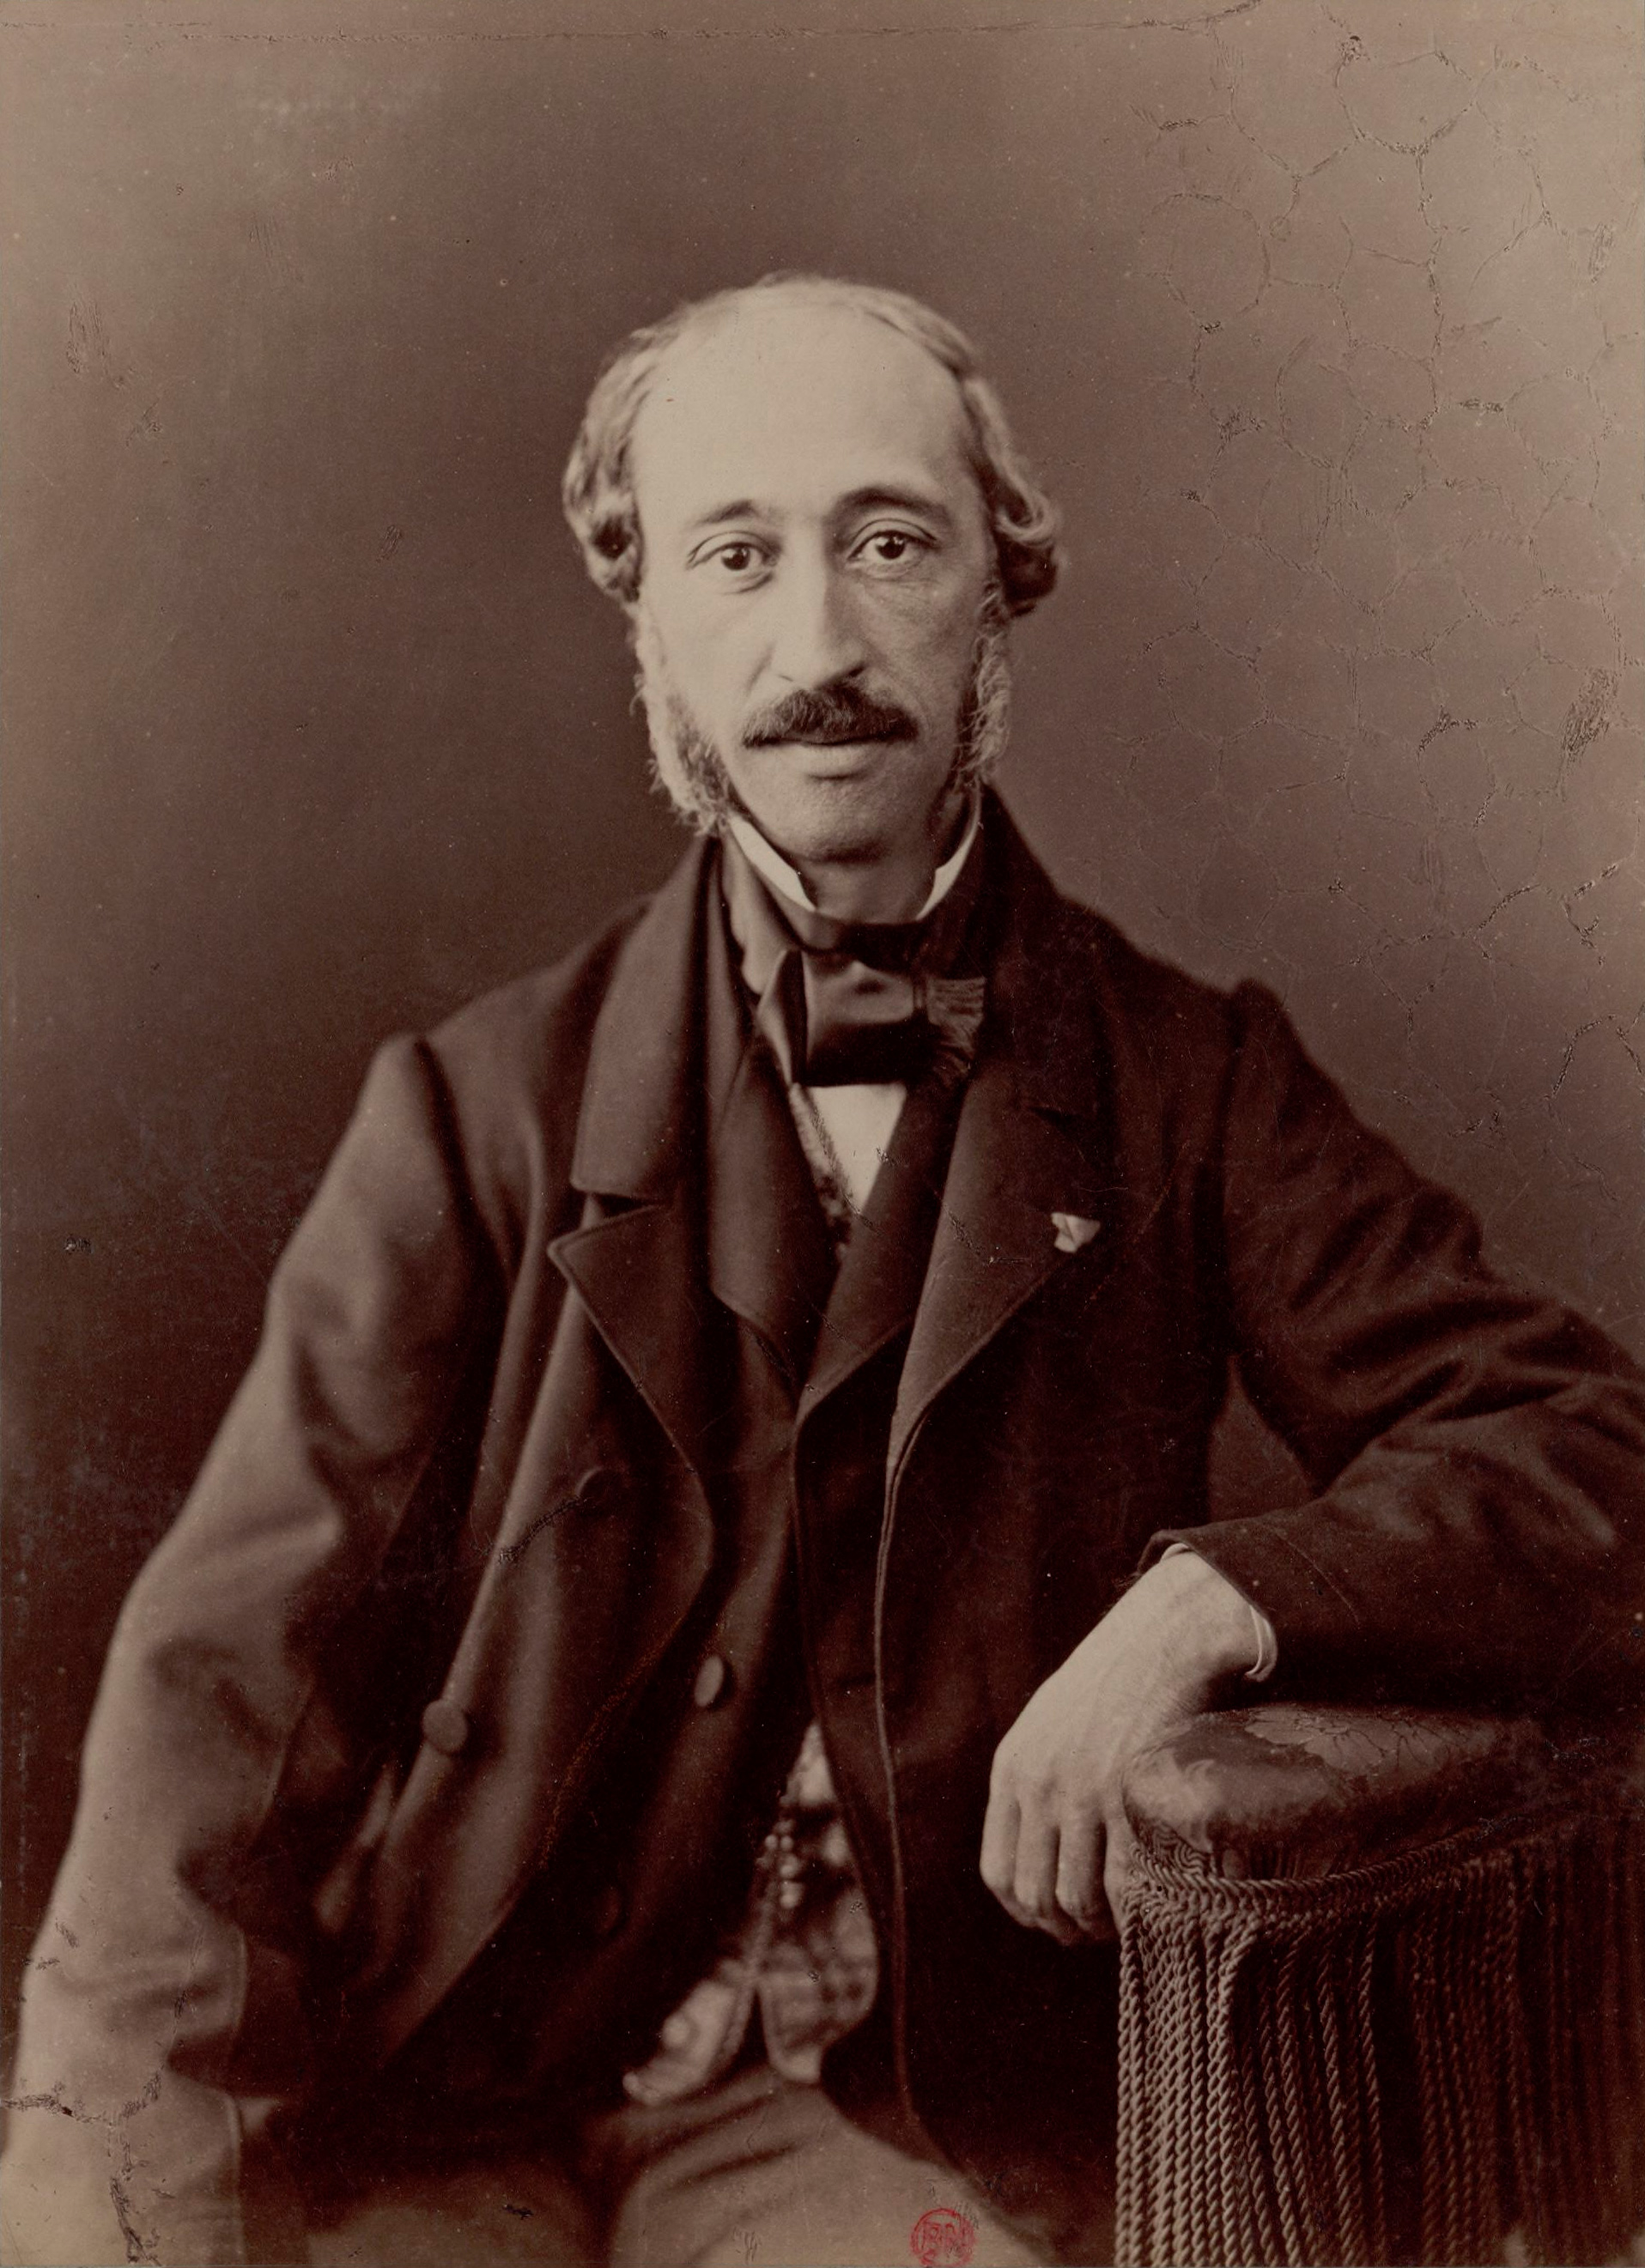 Image of Alexandre-Edmond Becquerel from Wikidata